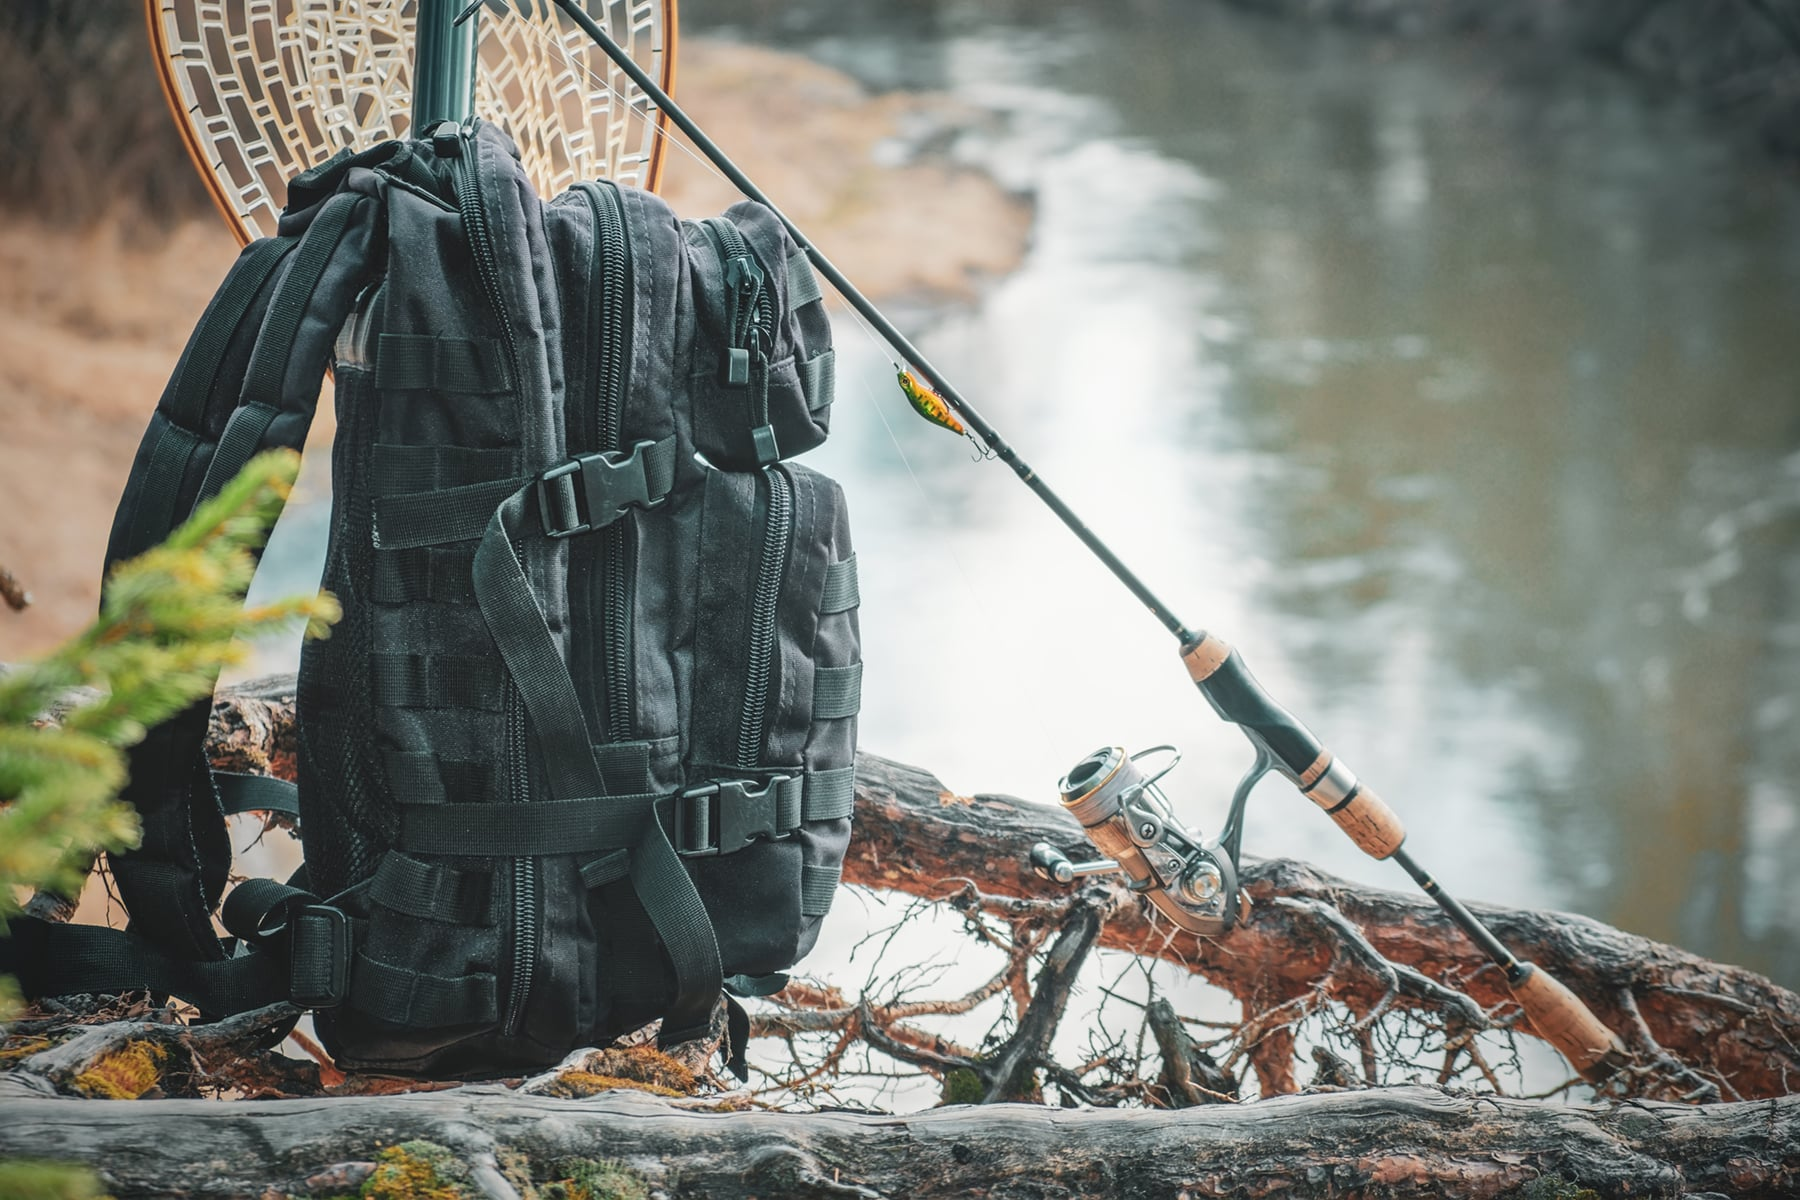 This is the cover photo for our Best Fishing Tackle Backpacks article. It features a tackle backpack and fishing rod on a river bank with a river and trees in the background.